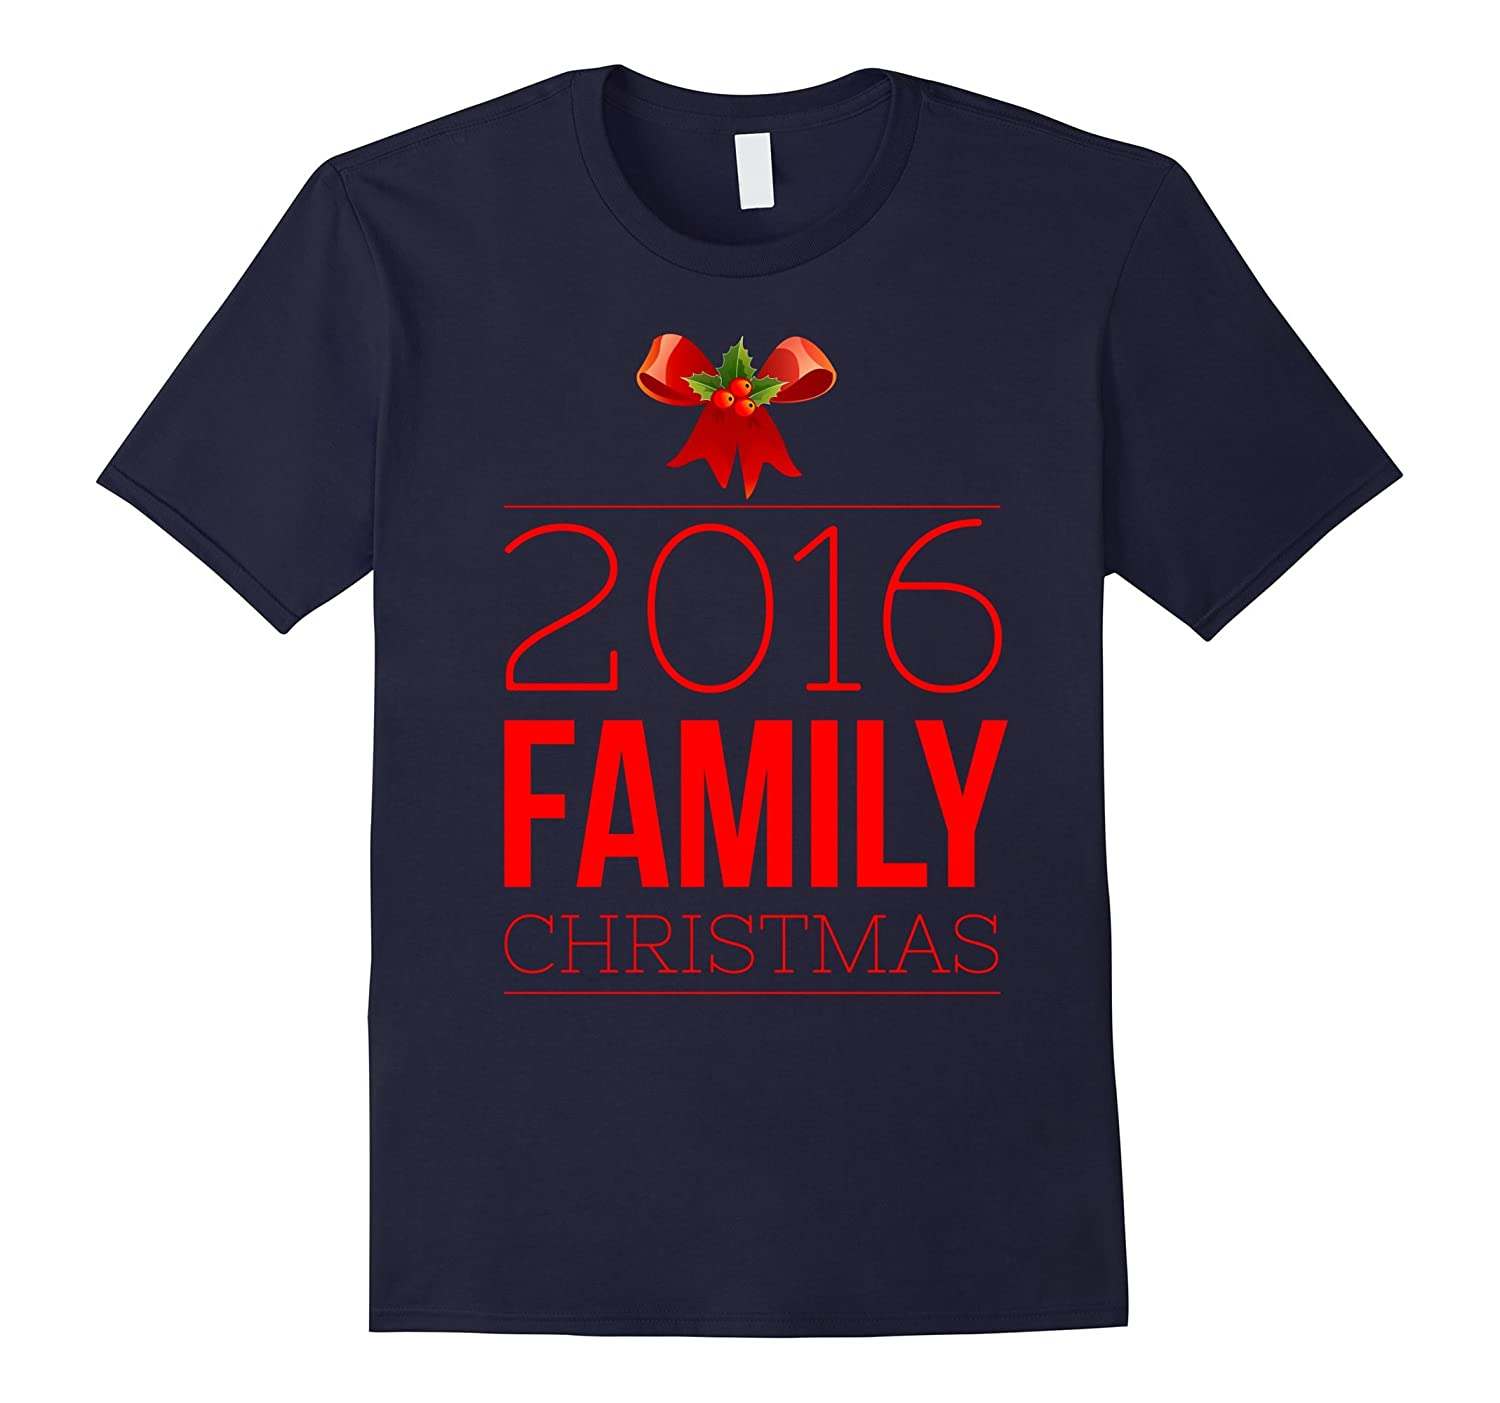 2016 Family Christmas T-Shirt-CL